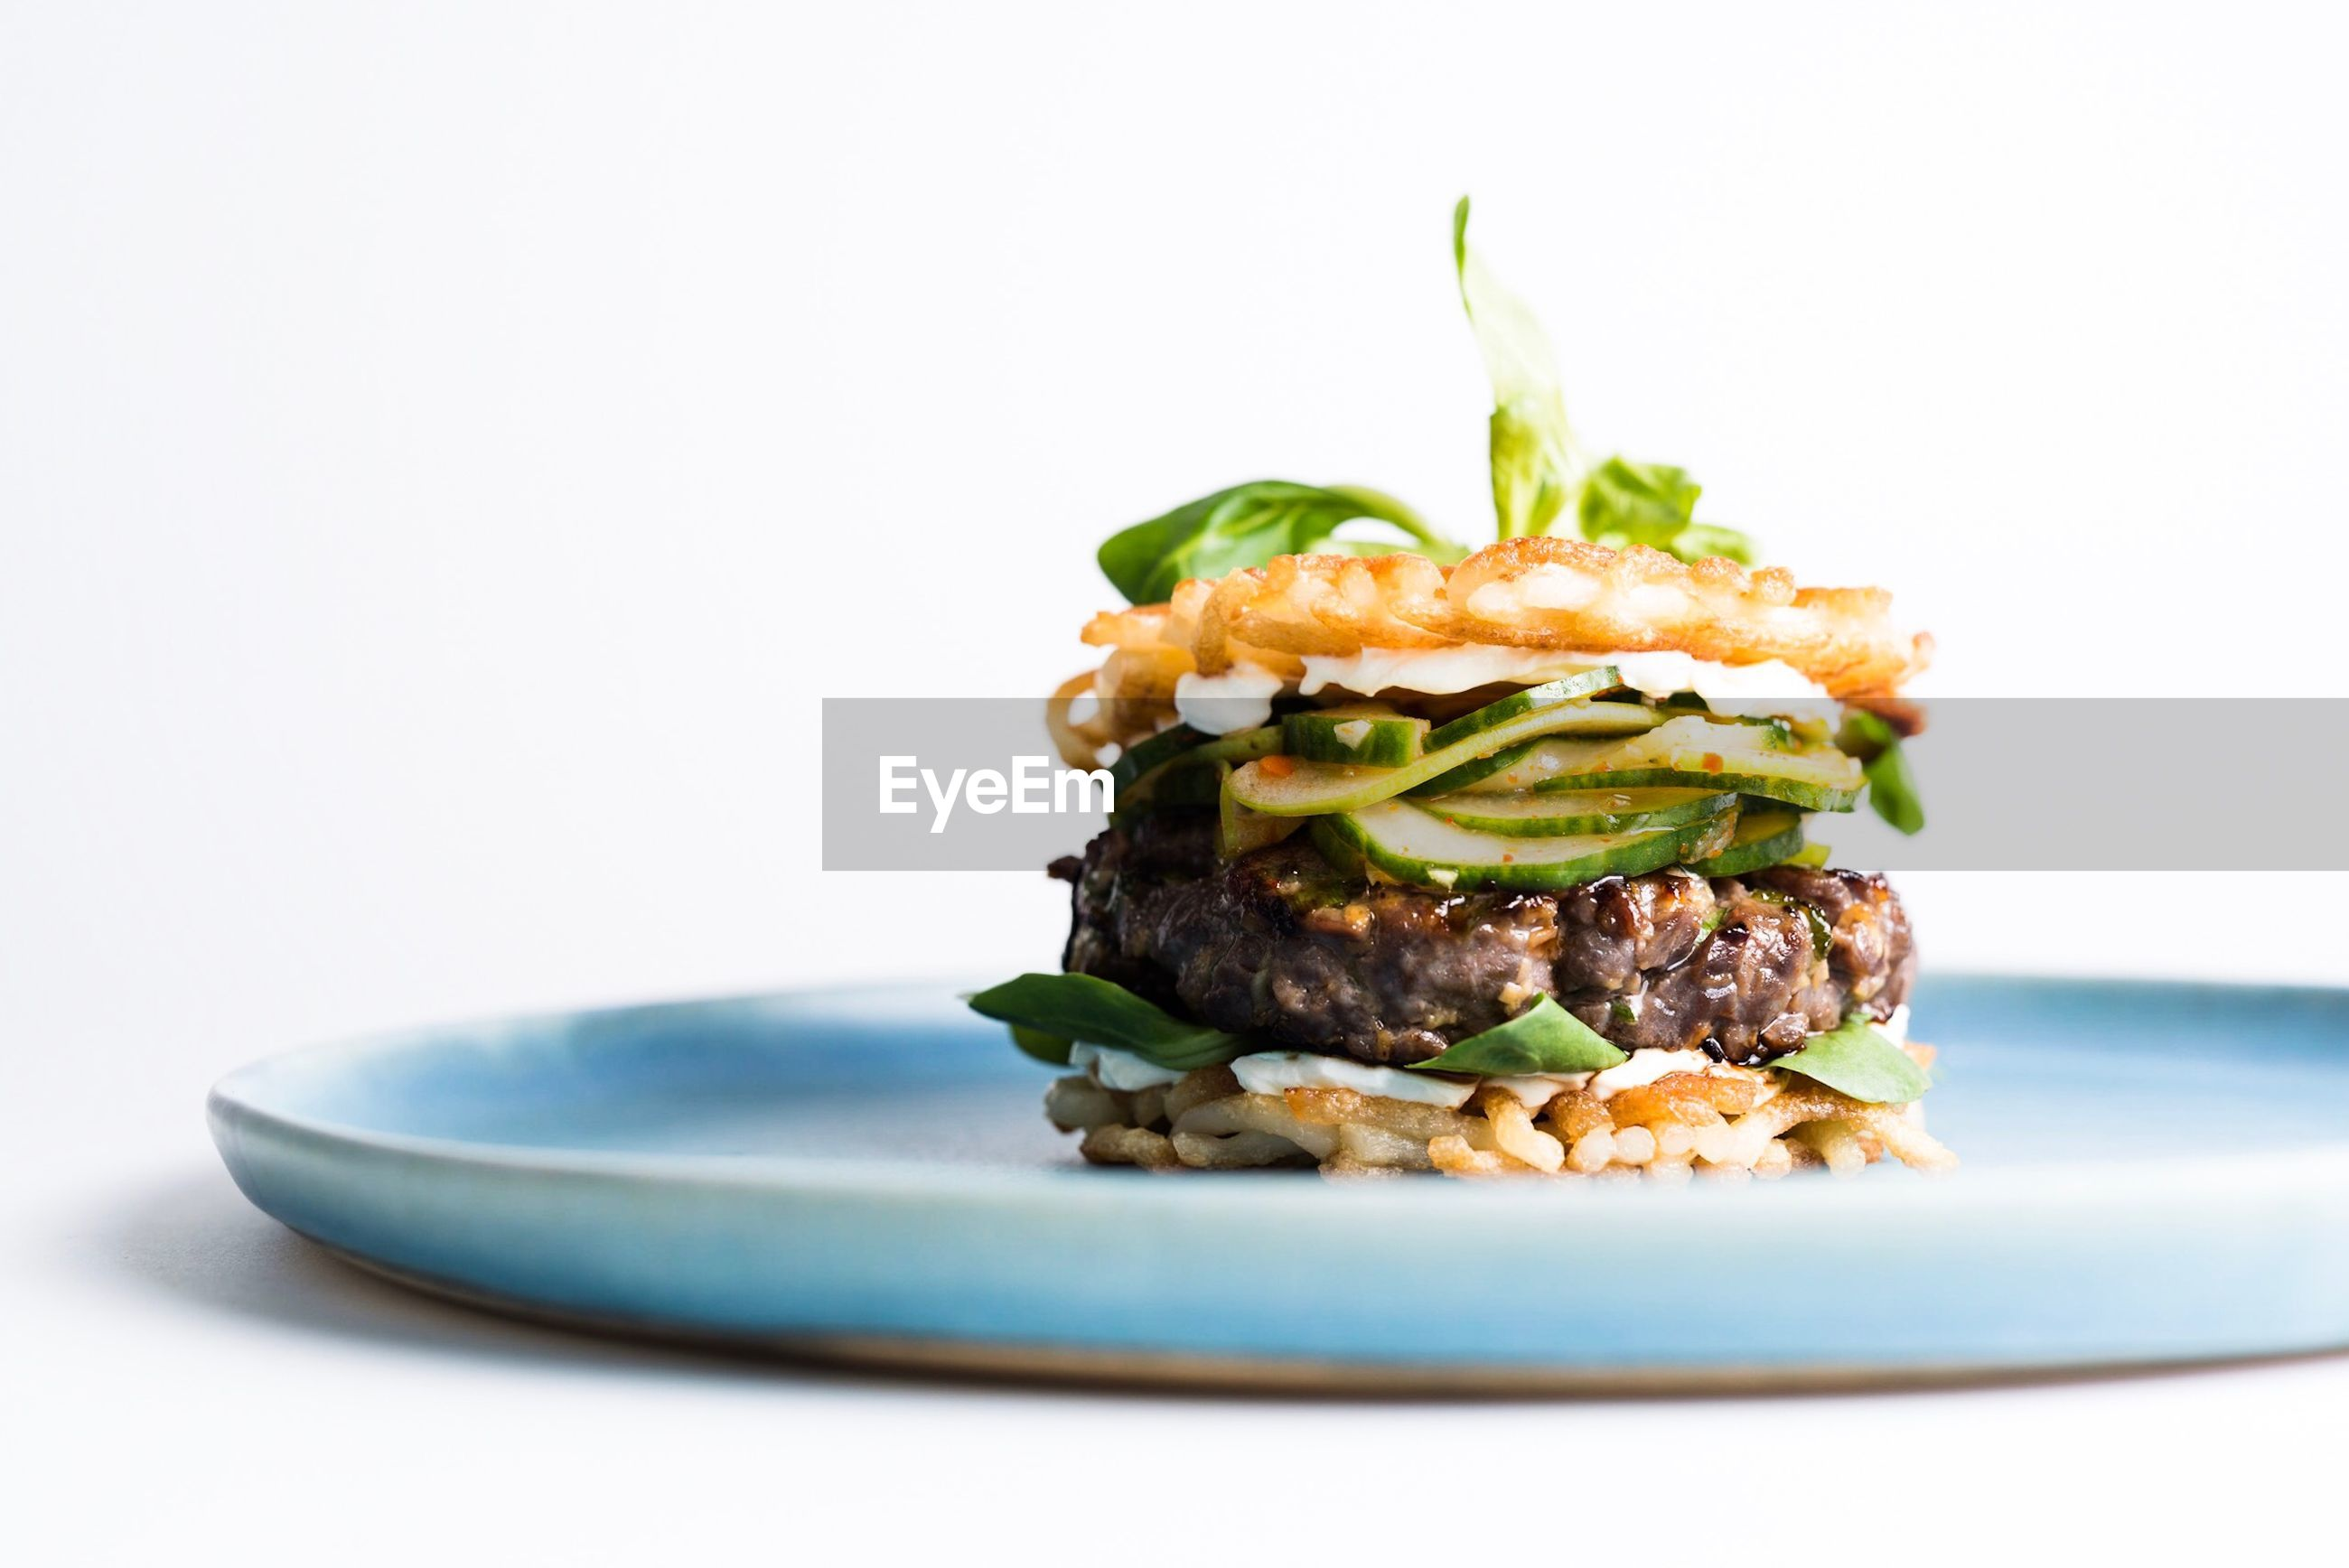 Close-up of food served in plate against white background